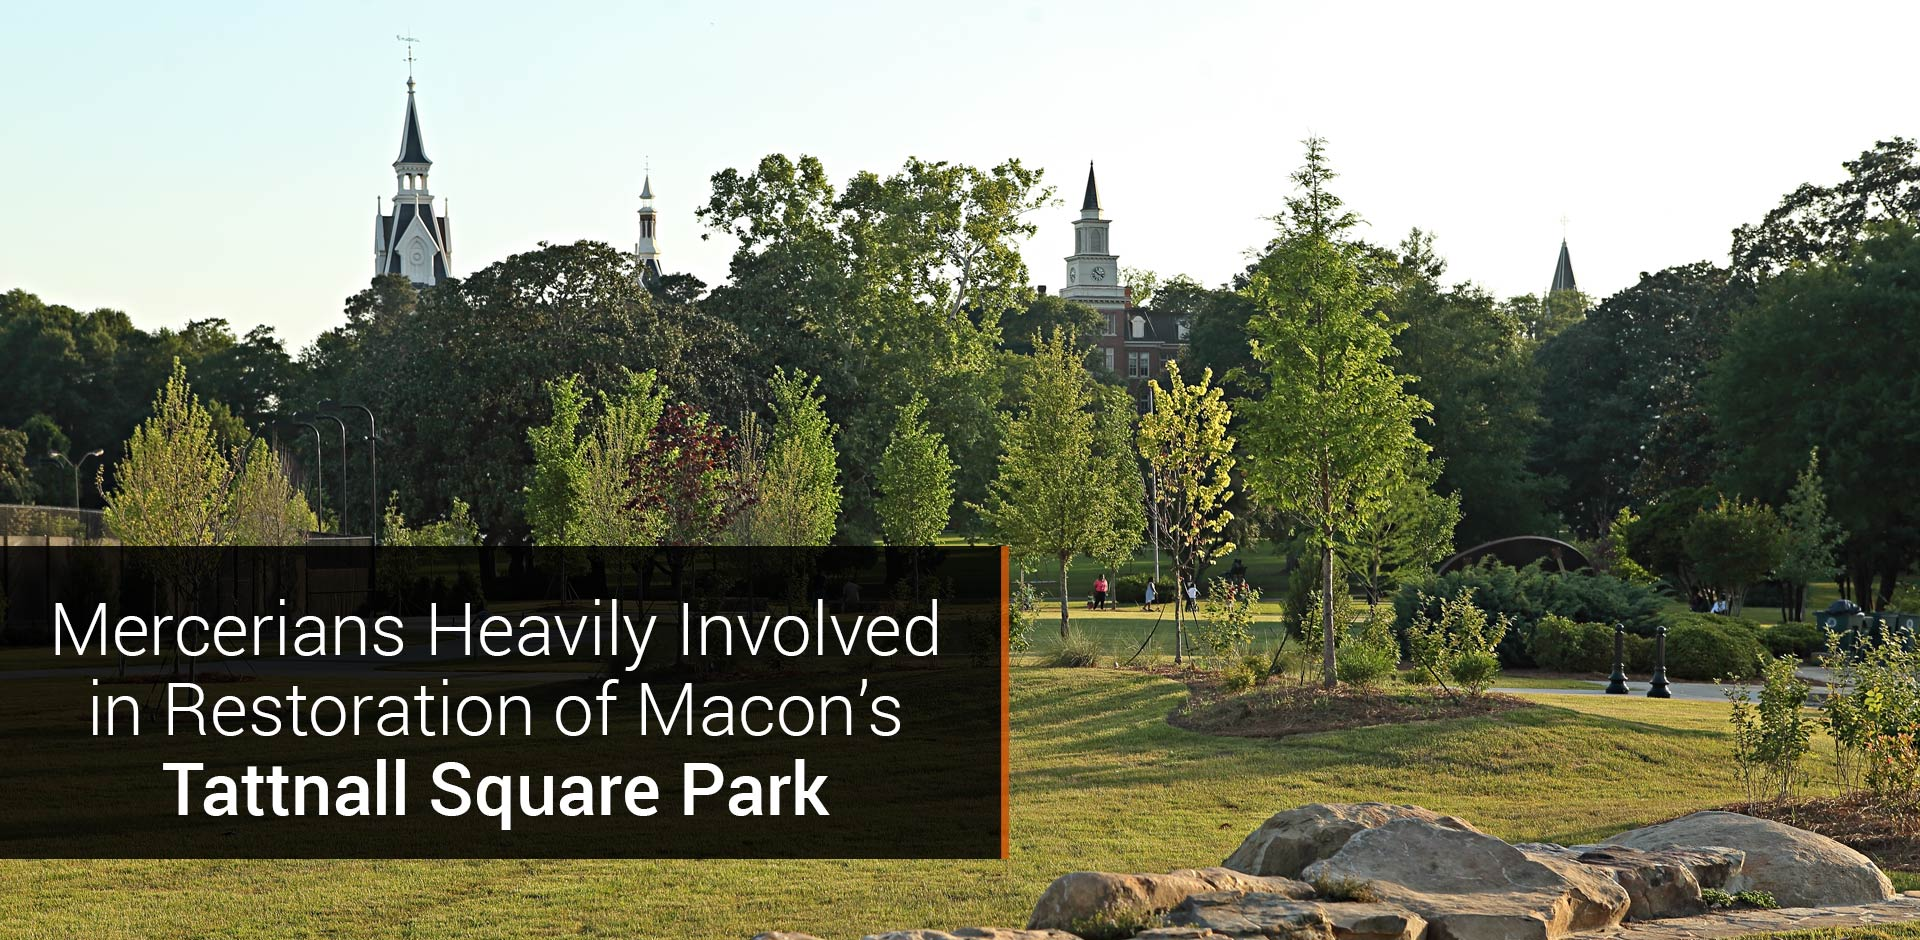 Mercerians Heavily Involved in Community Group's Restoration of Nearby Tattnall Square Park